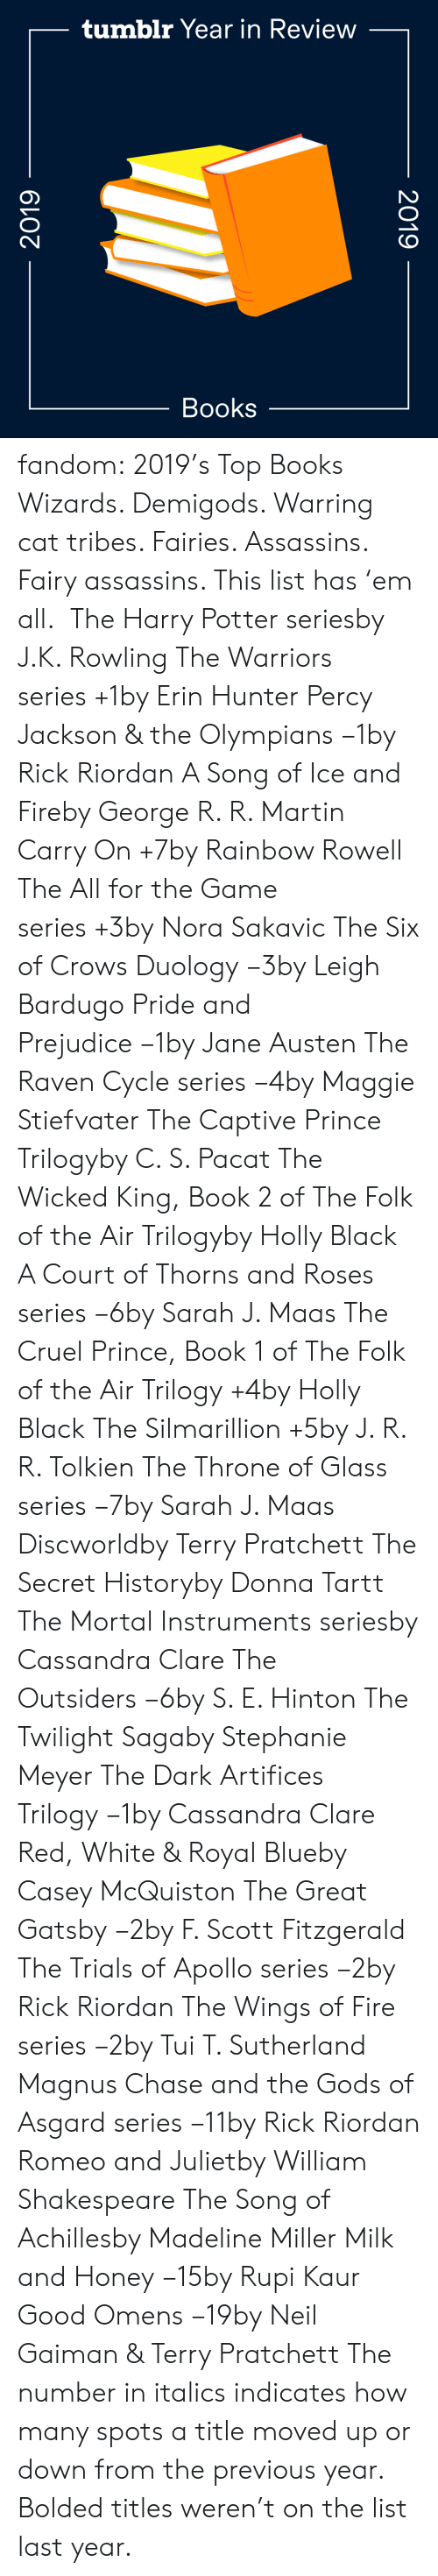 hunter: tumblr Year in Review  Books  2019  2019 fandom:  2019's Top Books  Wizards. Demigods. Warring cat tribes. Fairies. Assassins. Fairy assassins. This list has 'em all.   The Harry Potter seriesby J.K. Rowling  The Warriors series +1by Erin Hunter  Percy Jackson & the Olympians −1by Rick Riordan  A Song of Ice and Fireby George R. R. Martin  Carry On +7by Rainbow Rowell  The All for the Game series +3by Nora Sakavic  The Six of Crows Duology −3by Leigh Bardugo  Pride and Prejudice −1by Jane Austen  The Raven Cycle series −4by Maggie Stiefvater  The Captive Prince Trilogyby C. S. Pacat  The Wicked King, Book 2 of The Folk of the Air Trilogyby Holly Black  A Court of Thorns and Roses series −6by Sarah J. Maas  The Cruel Prince, Book 1 of The Folk of the Air Trilogy +4by Holly Black  The Silmarillion +5by J. R. R. Tolkien  The Throne of Glass series −7by Sarah J. Maas  Discworldby Terry Pratchett  The Secret Historyby Donna Tartt  The Mortal Instruments seriesby Cassandra Clare  The Outsiders −6by S. E. Hinton  The Twilight Sagaby Stephanie Meyer  The Dark Artifices Trilogy −1by Cassandra Clare  Red, White & Royal Blueby Casey McQuiston  The Great Gatsby −2by F. Scott Fitzgerald  The Trials of Apollo series −2by Rick Riordan  The Wings of Fire series −2by Tui T. Sutherland  Magnus Chase and the Gods of Asgard series −11by Rick Riordan  Romeo and Julietby William Shakespeare  The Song of Achillesby Madeline Miller  Milk and Honey −15by Rupi Kaur  Good Omens −19by Neil Gaiman & Terry Pratchett The number in italics indicates how many spots a title moved up or down from the previous year. Bolded titles weren't on the list last year.